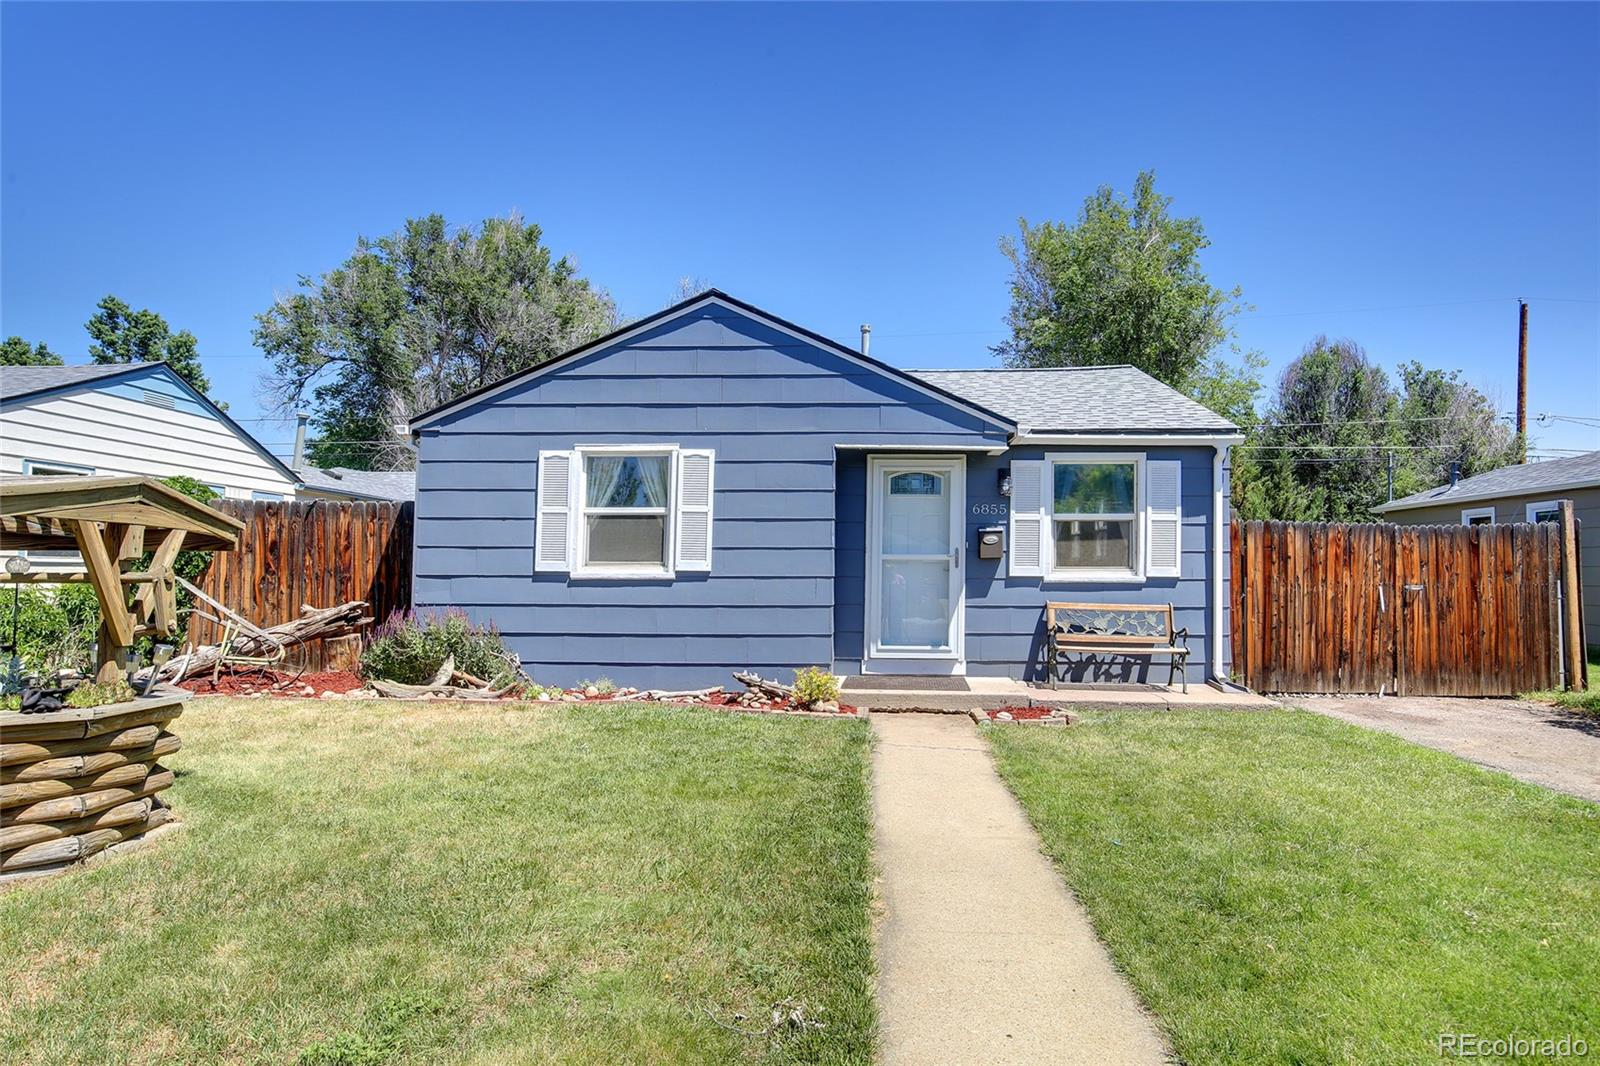 6855 W 55th Place Property Photo - Arvada, CO real estate listing